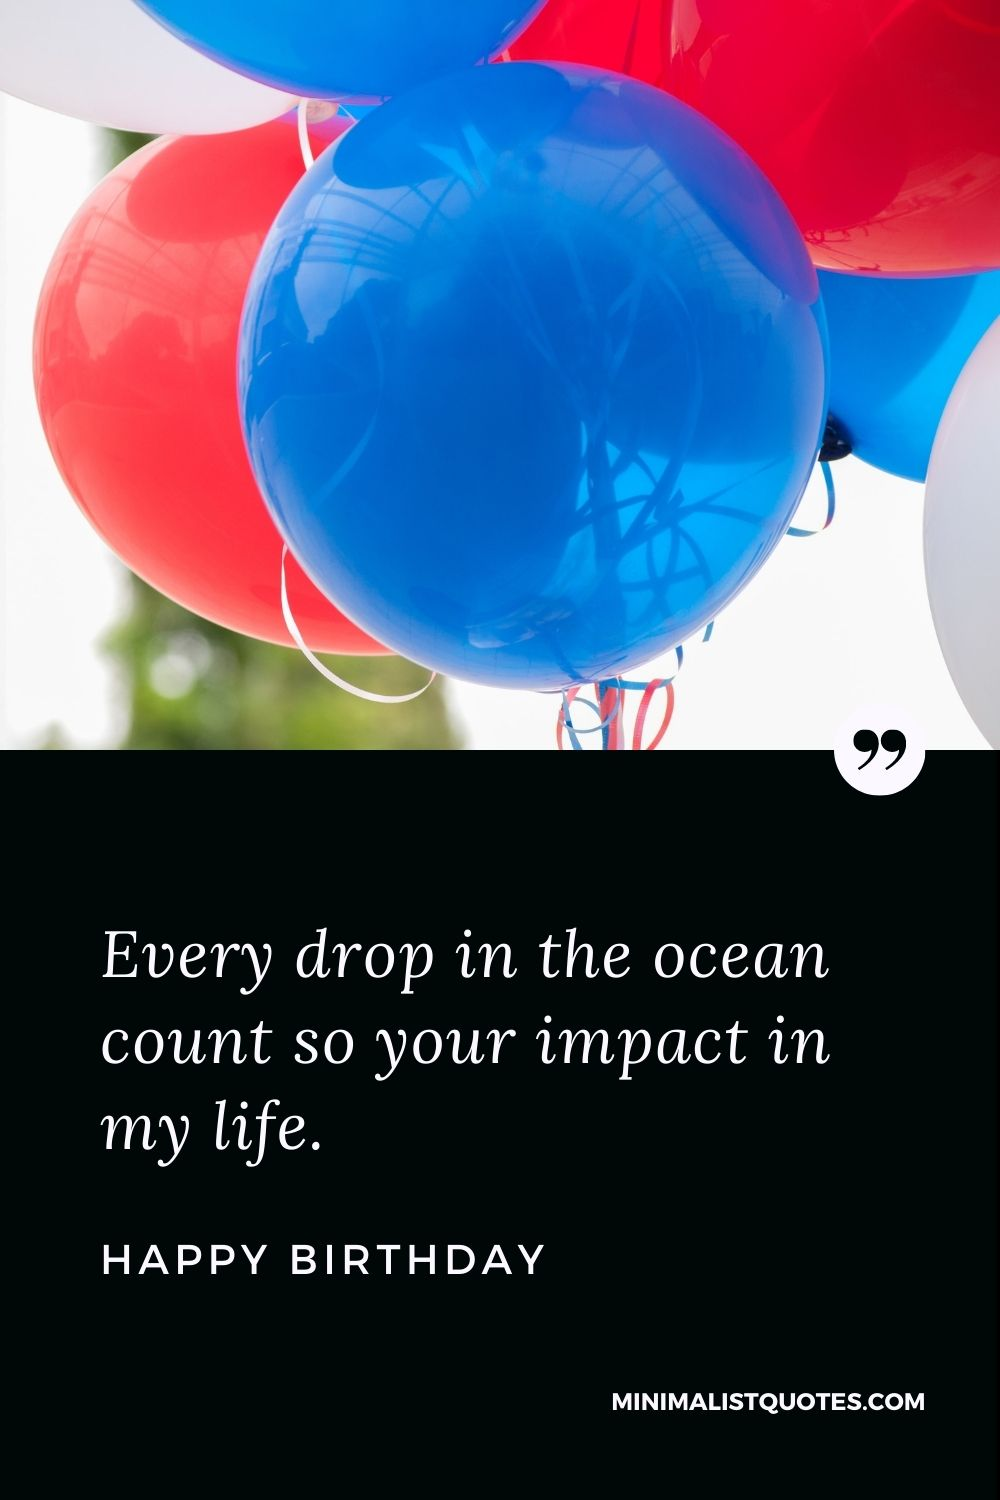 Happy Birthday Wishes - Every drop in the ocean count so your impact in my life.